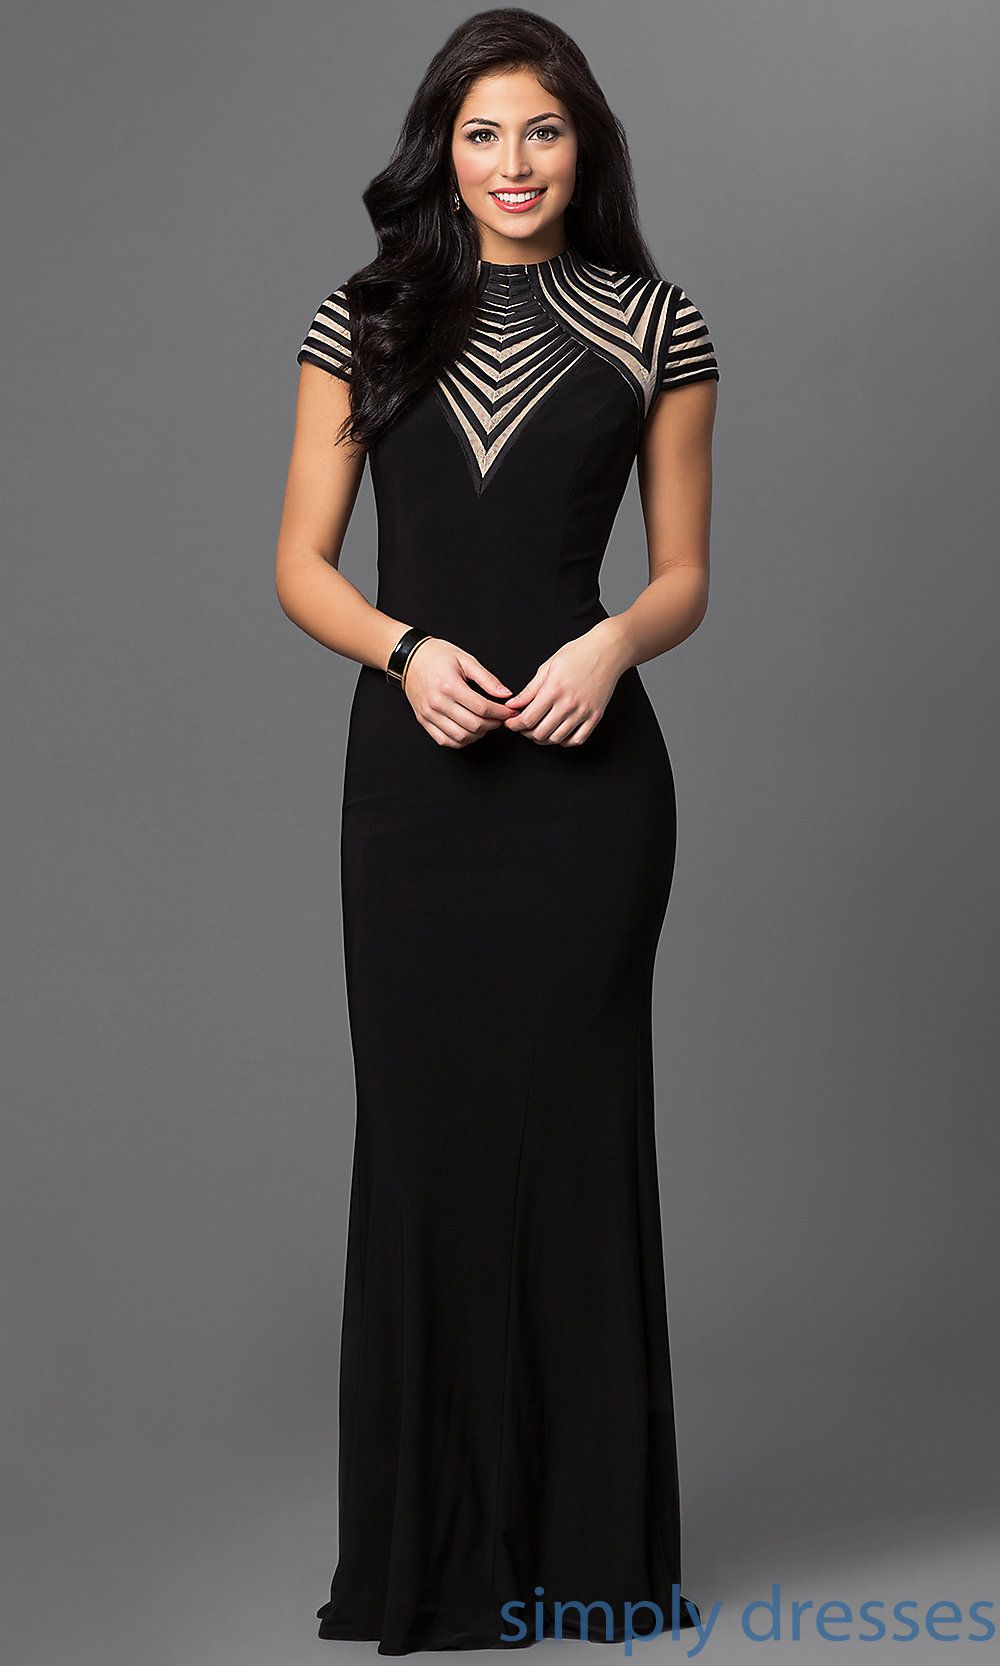 Shop nude and black prom dresses and long ball gowns at Simply Dresses. Floor-length wedding-guest dresses with cap sleeves and high necks.